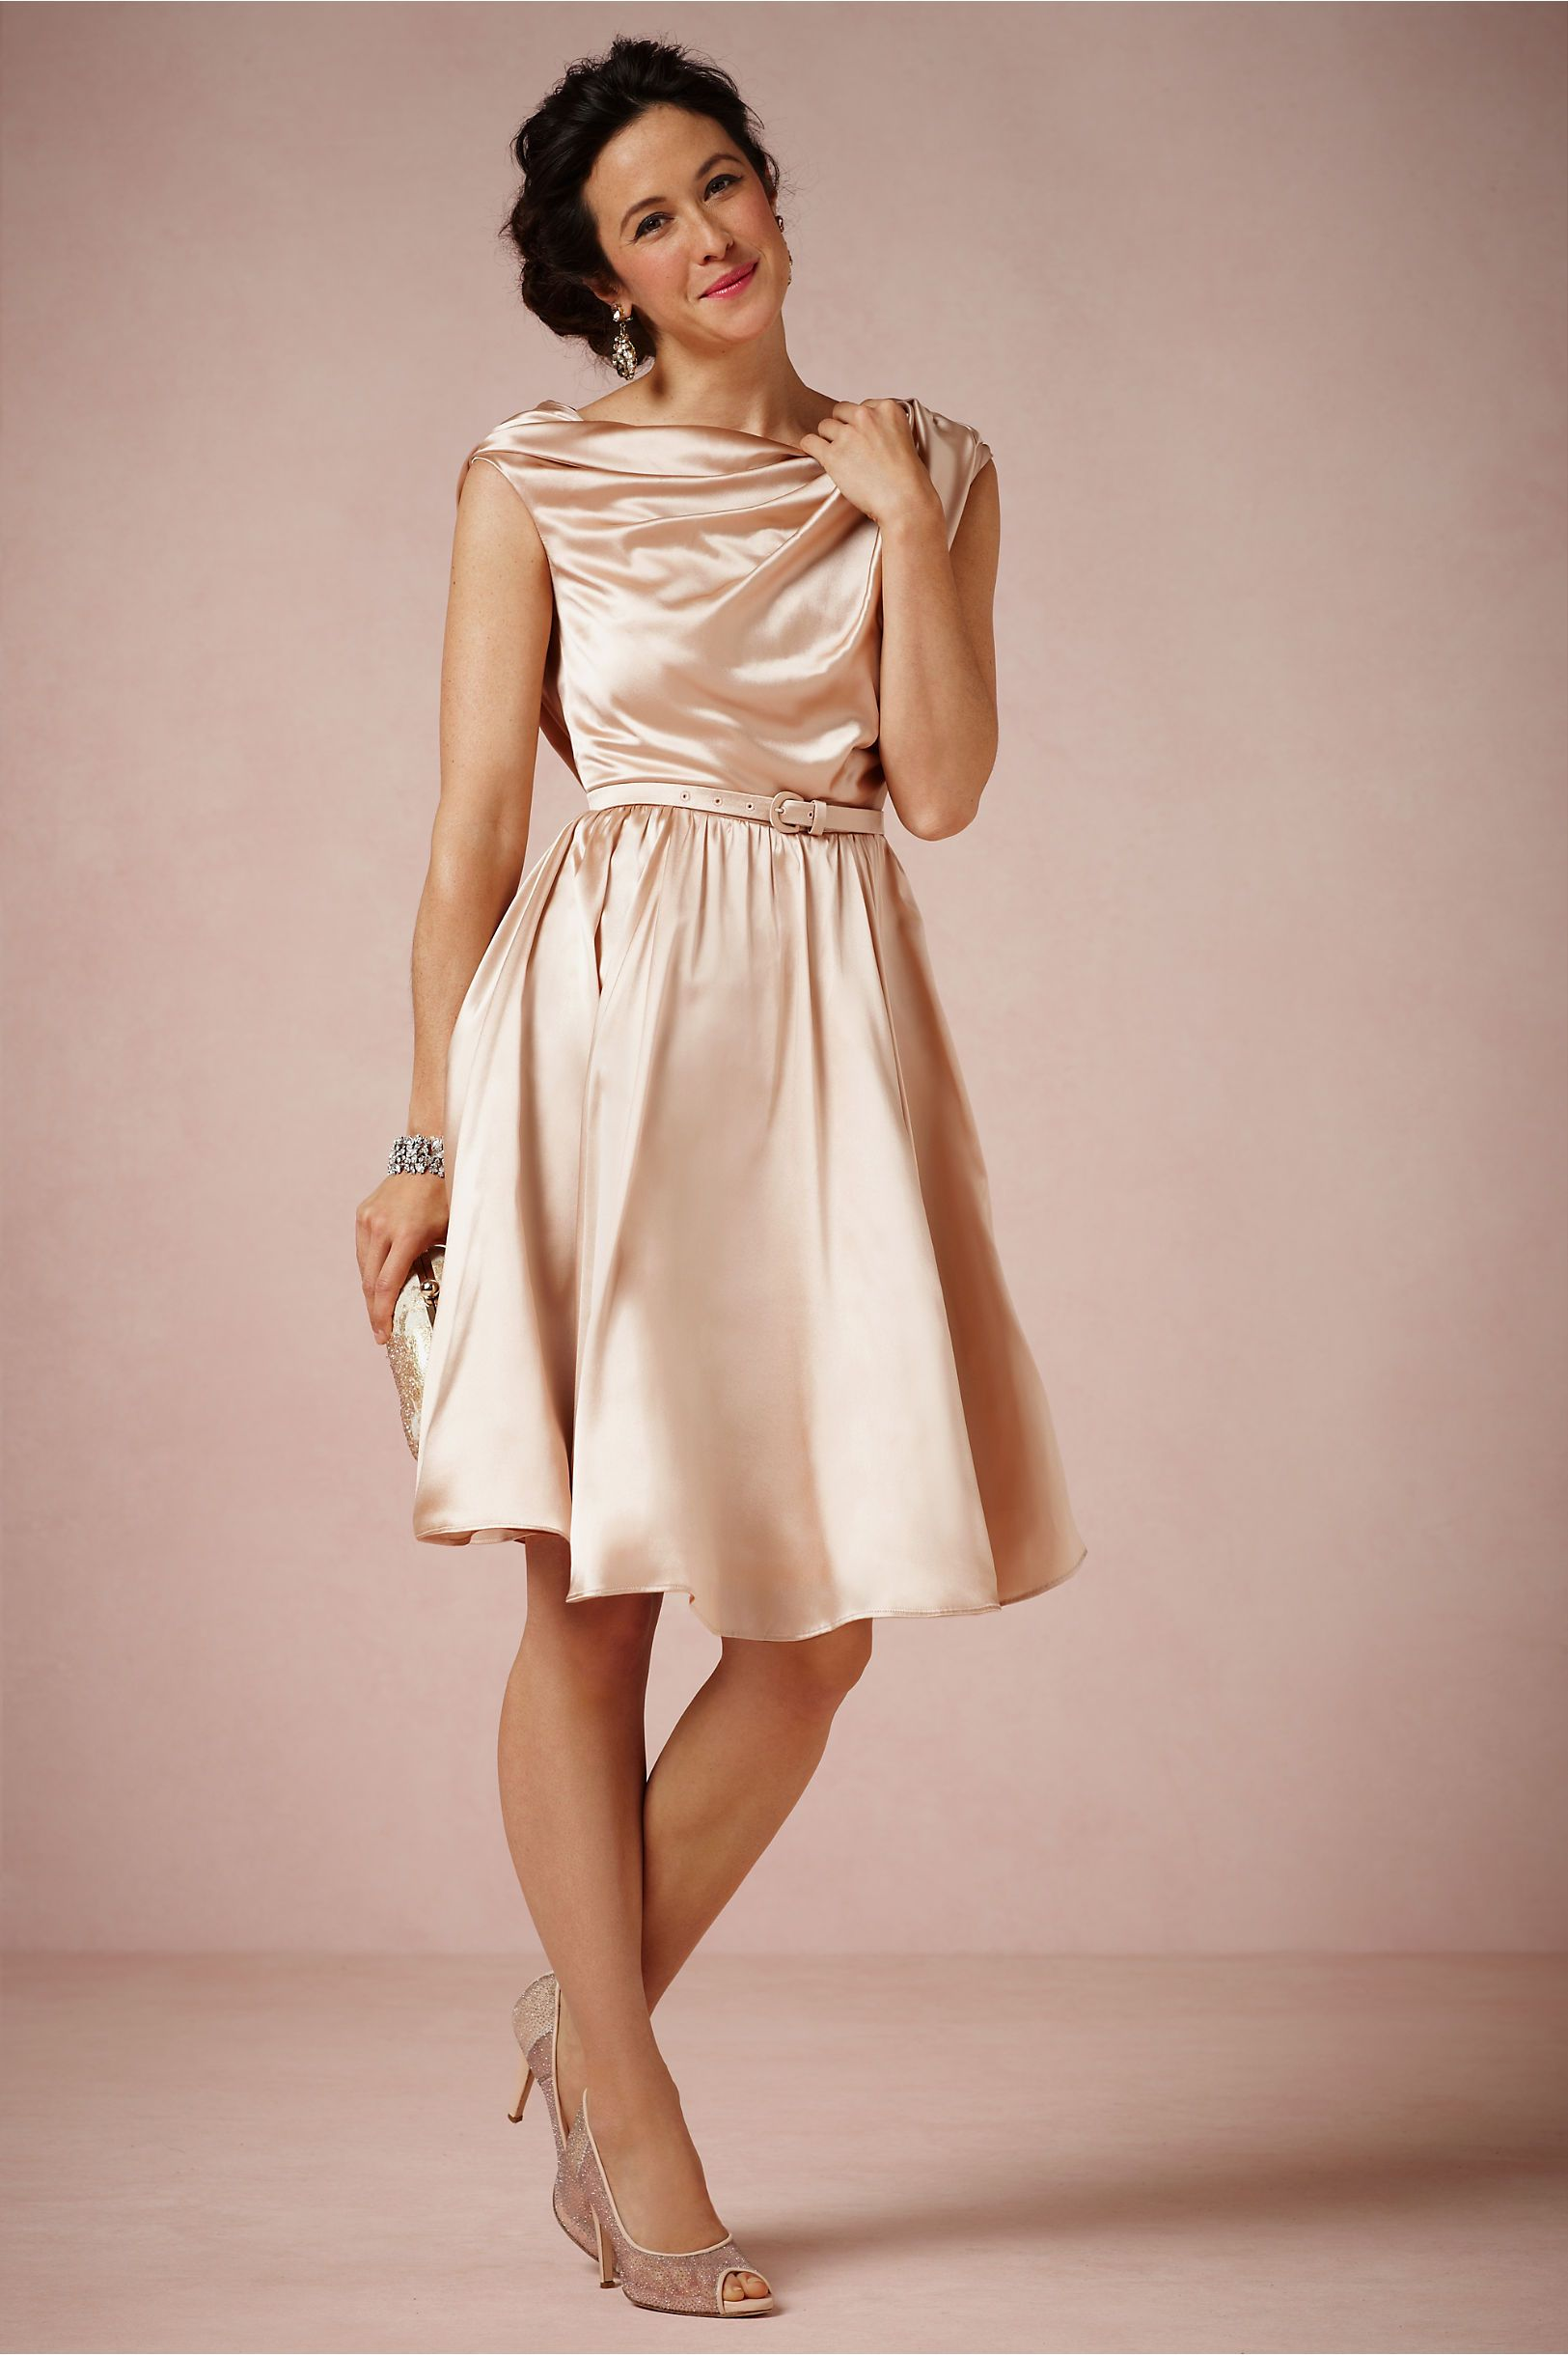 Preservation society dress in the bride reception dresses at bhldn